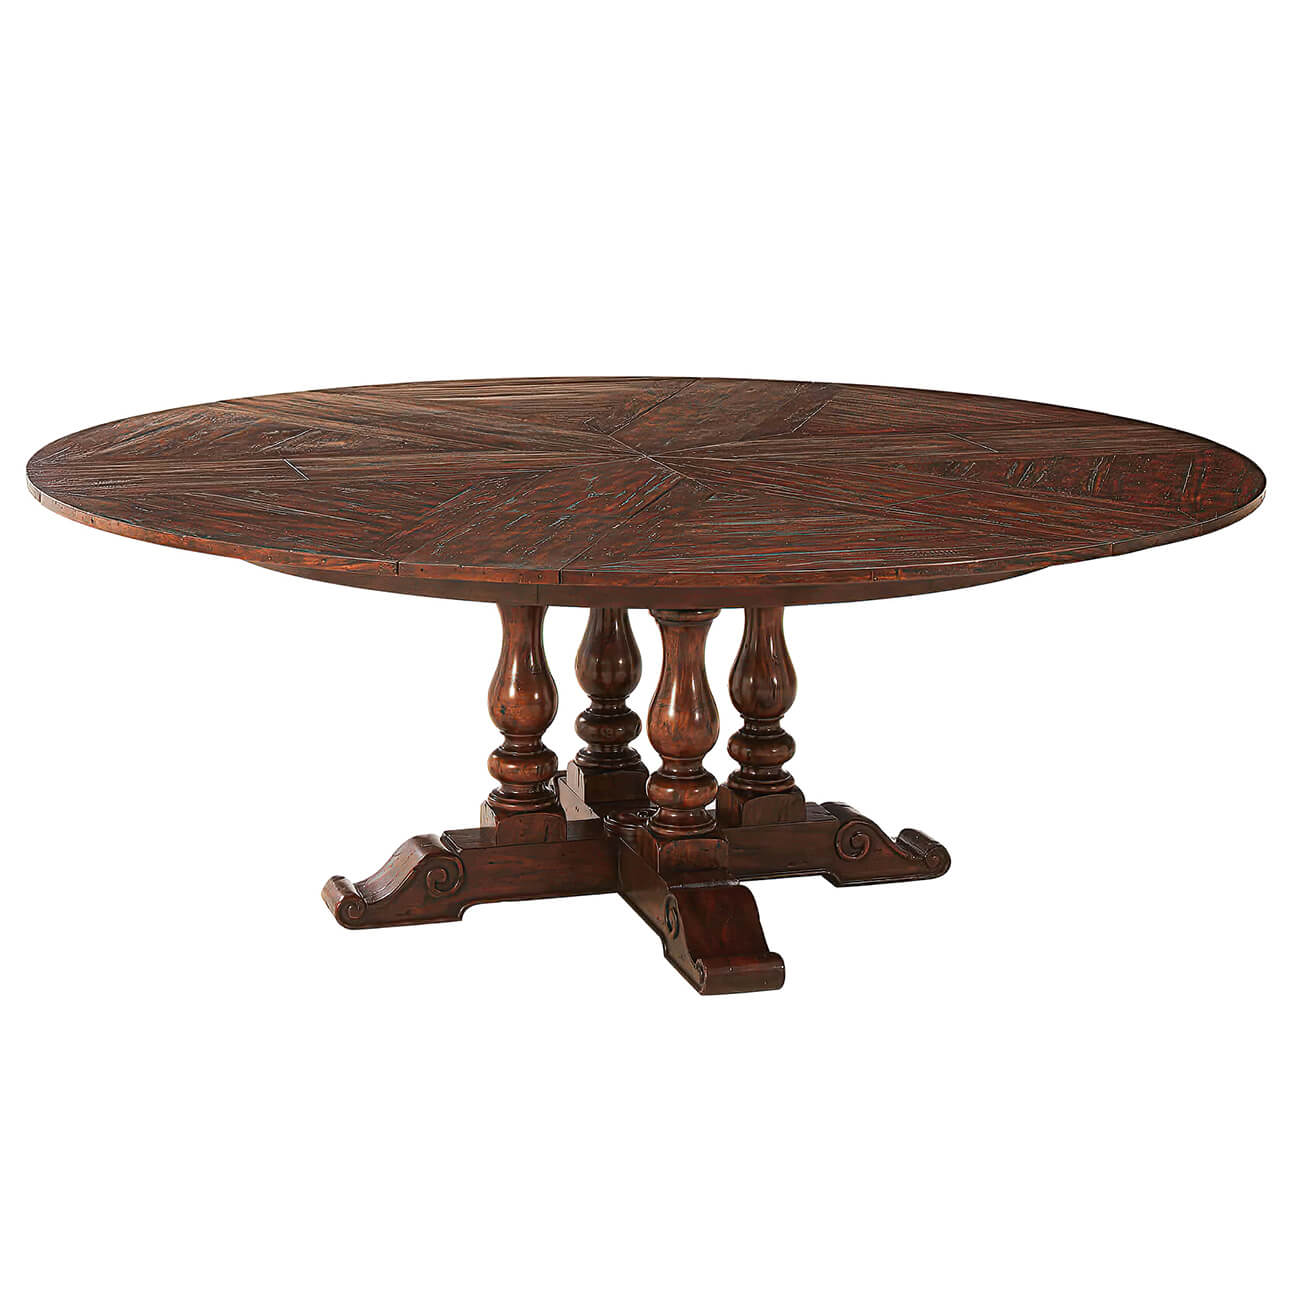 Early English Style Round Extension Dining Table 78